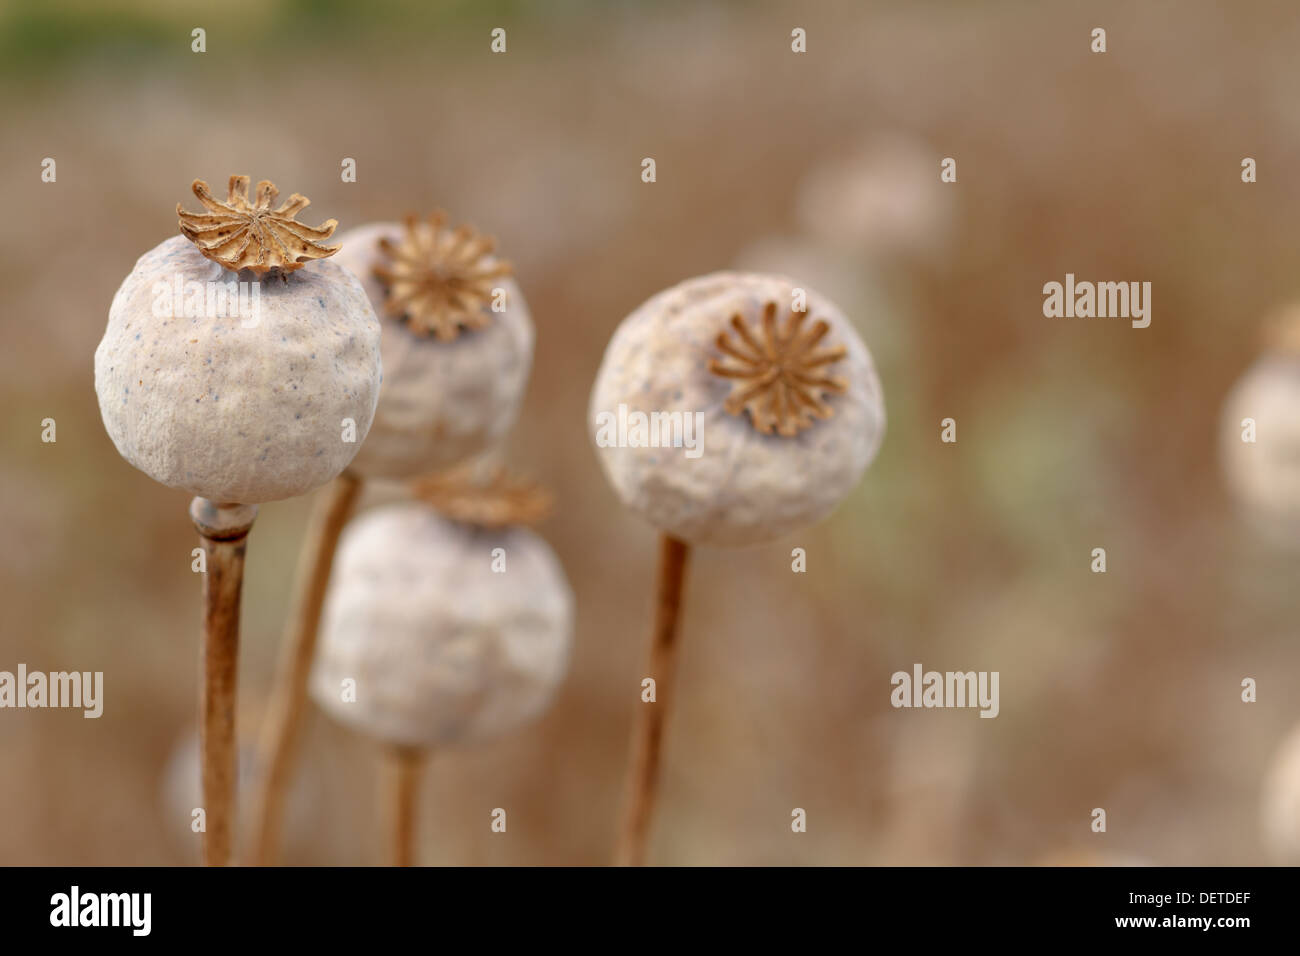 Detail of dry tree poppyheads on the field with shallow focus - Stock Image